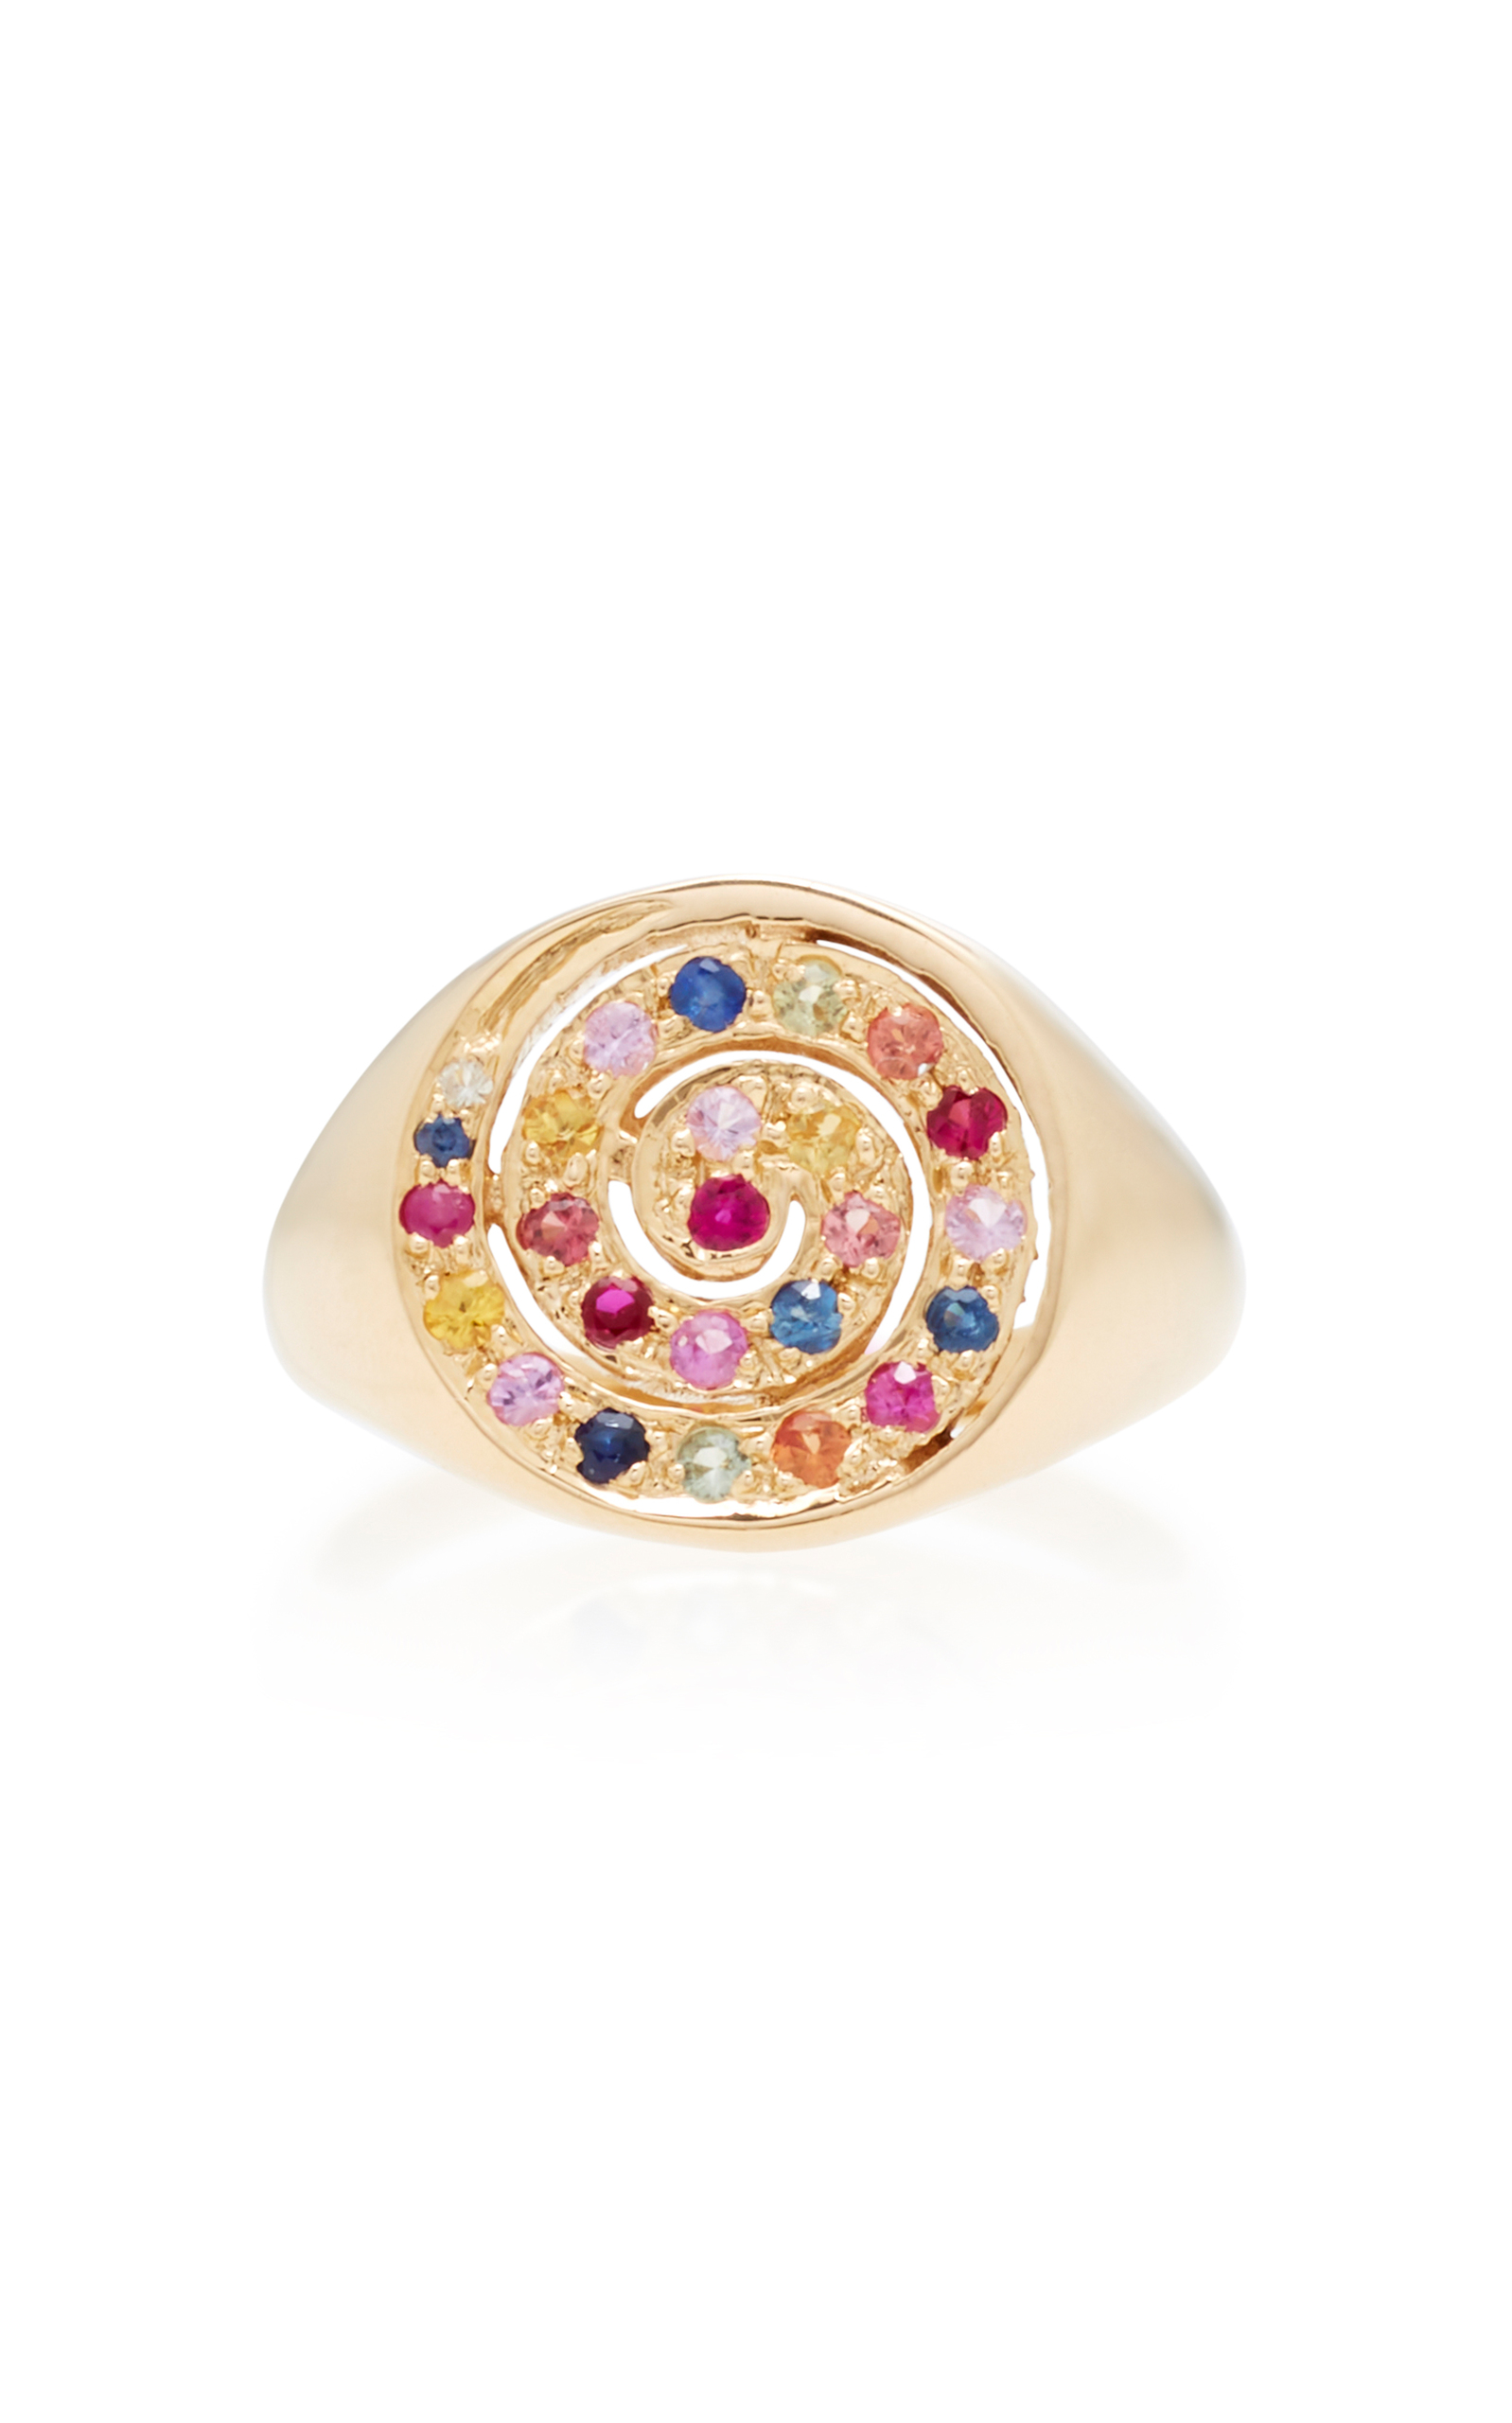 SHE BEE 14K YELLOW GOLD AND SAPPHIRE SPIRAL RING